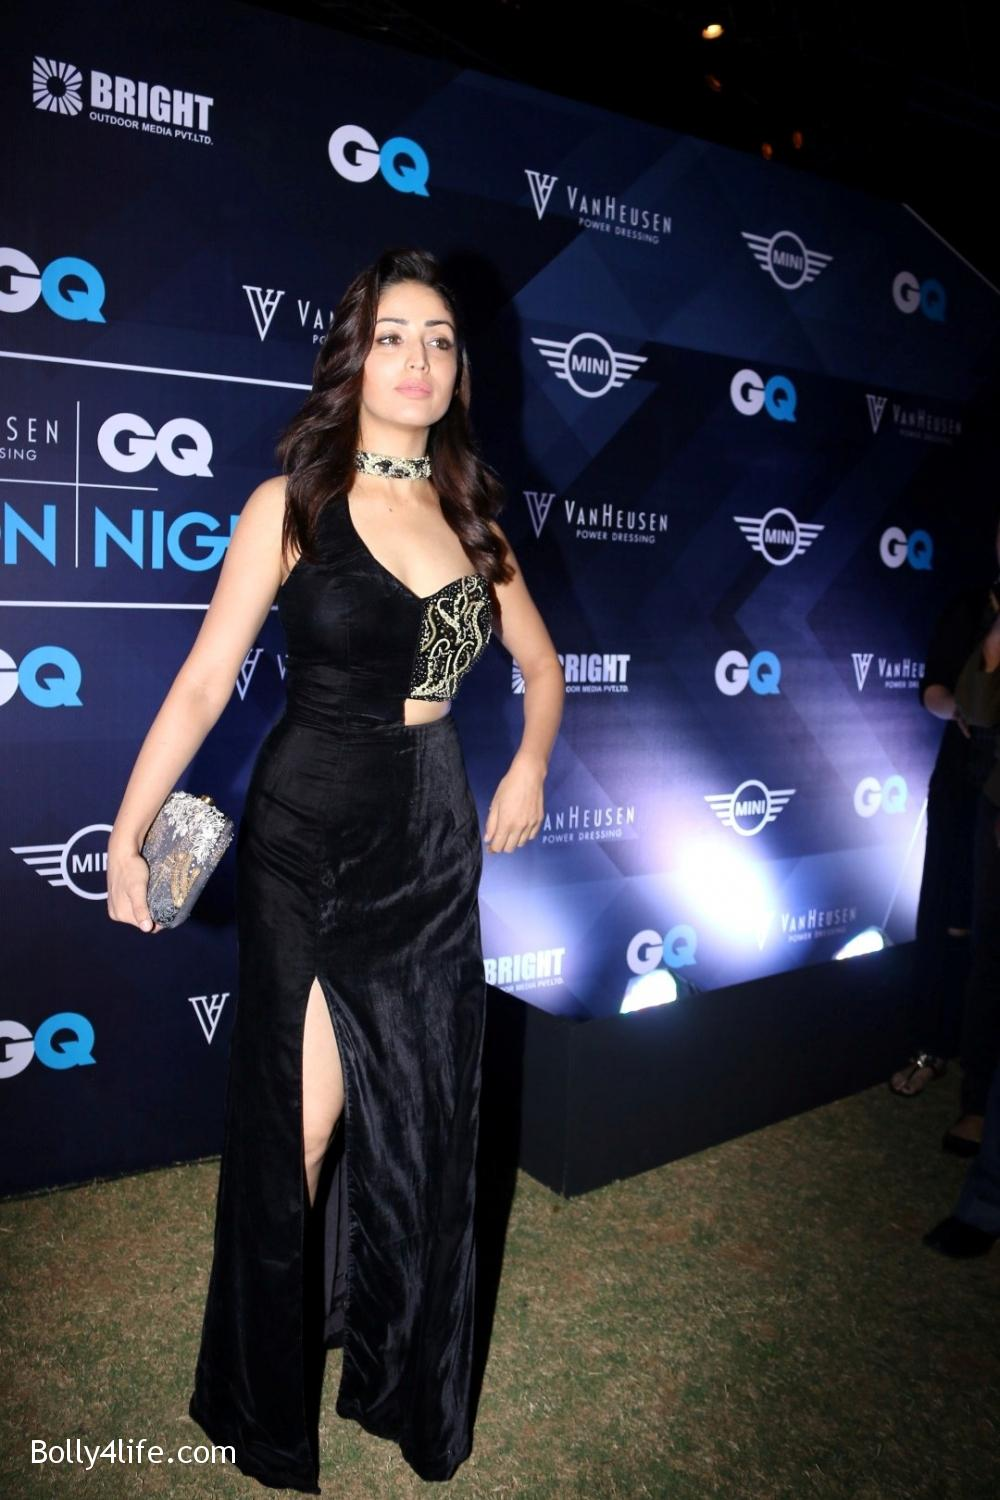 Yami-Gautam-during-the-Van-Heusen-GQ-Fashion-Nights-in-Mumbai-1.jpg